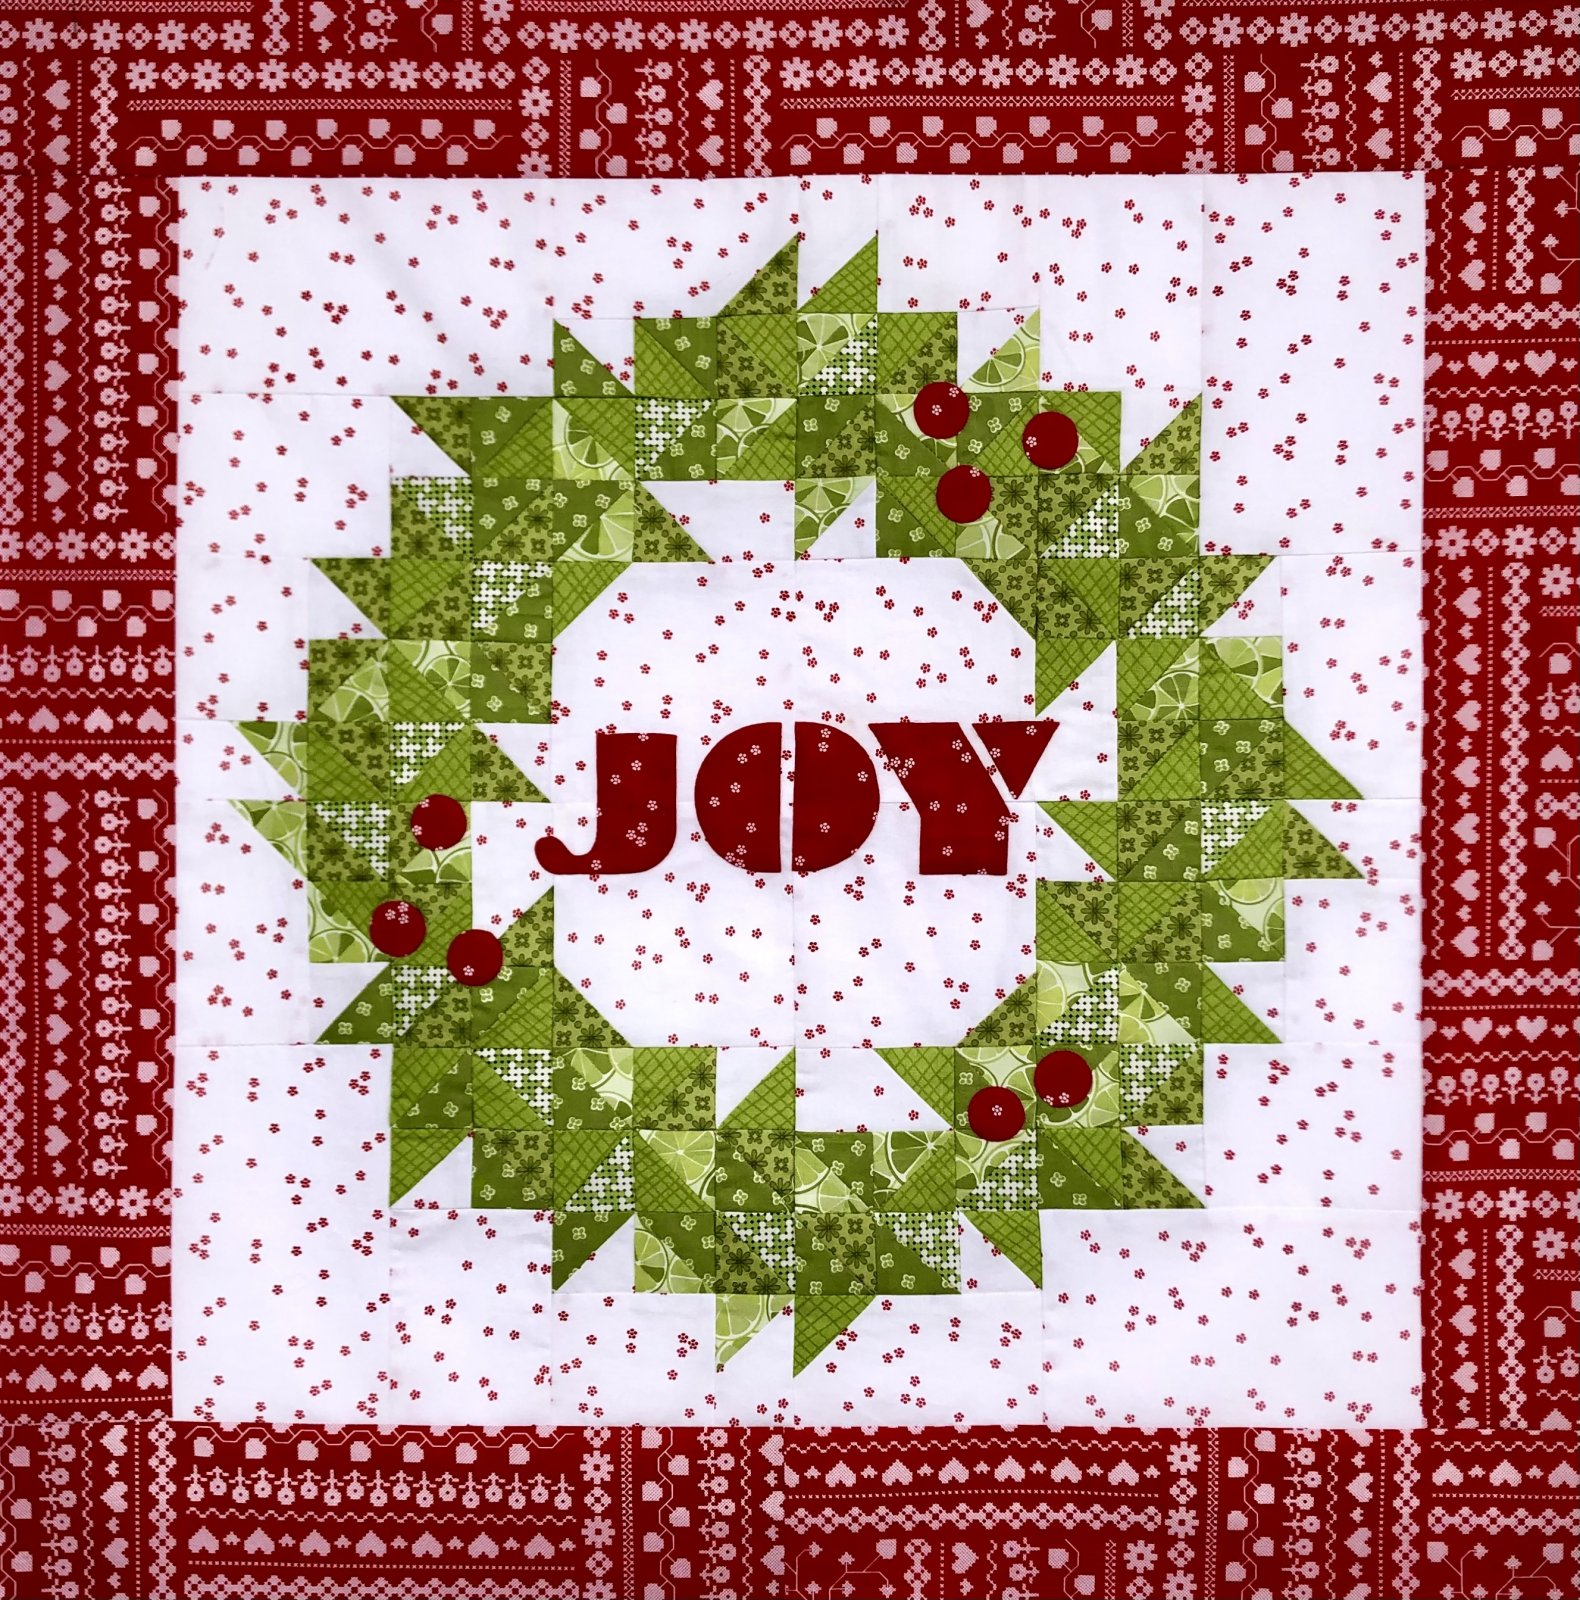 Joy Wreath Kit